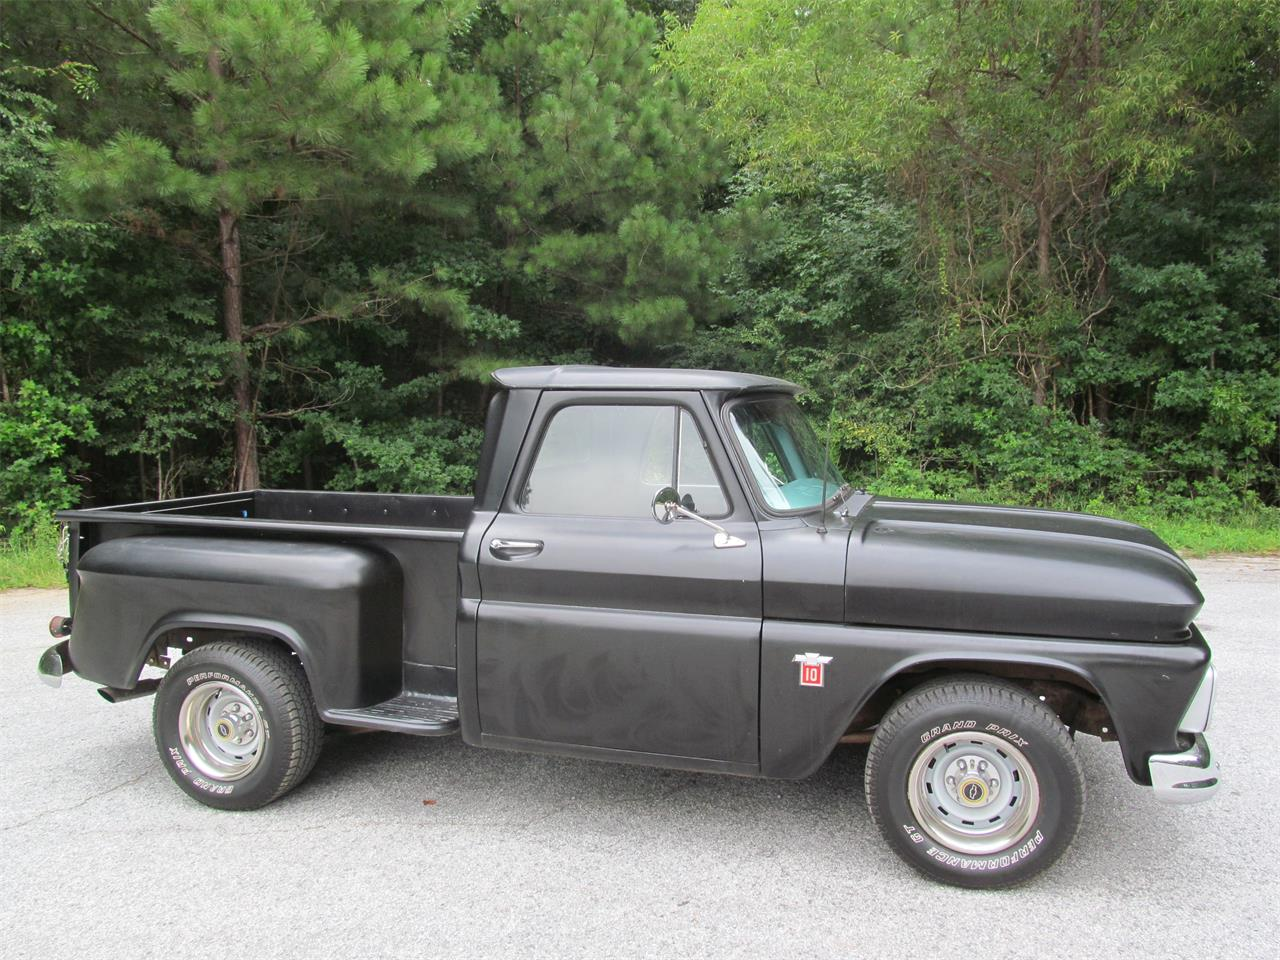 1964 Chevrolet C10 for sale in Fayetteville, GA – photo 2